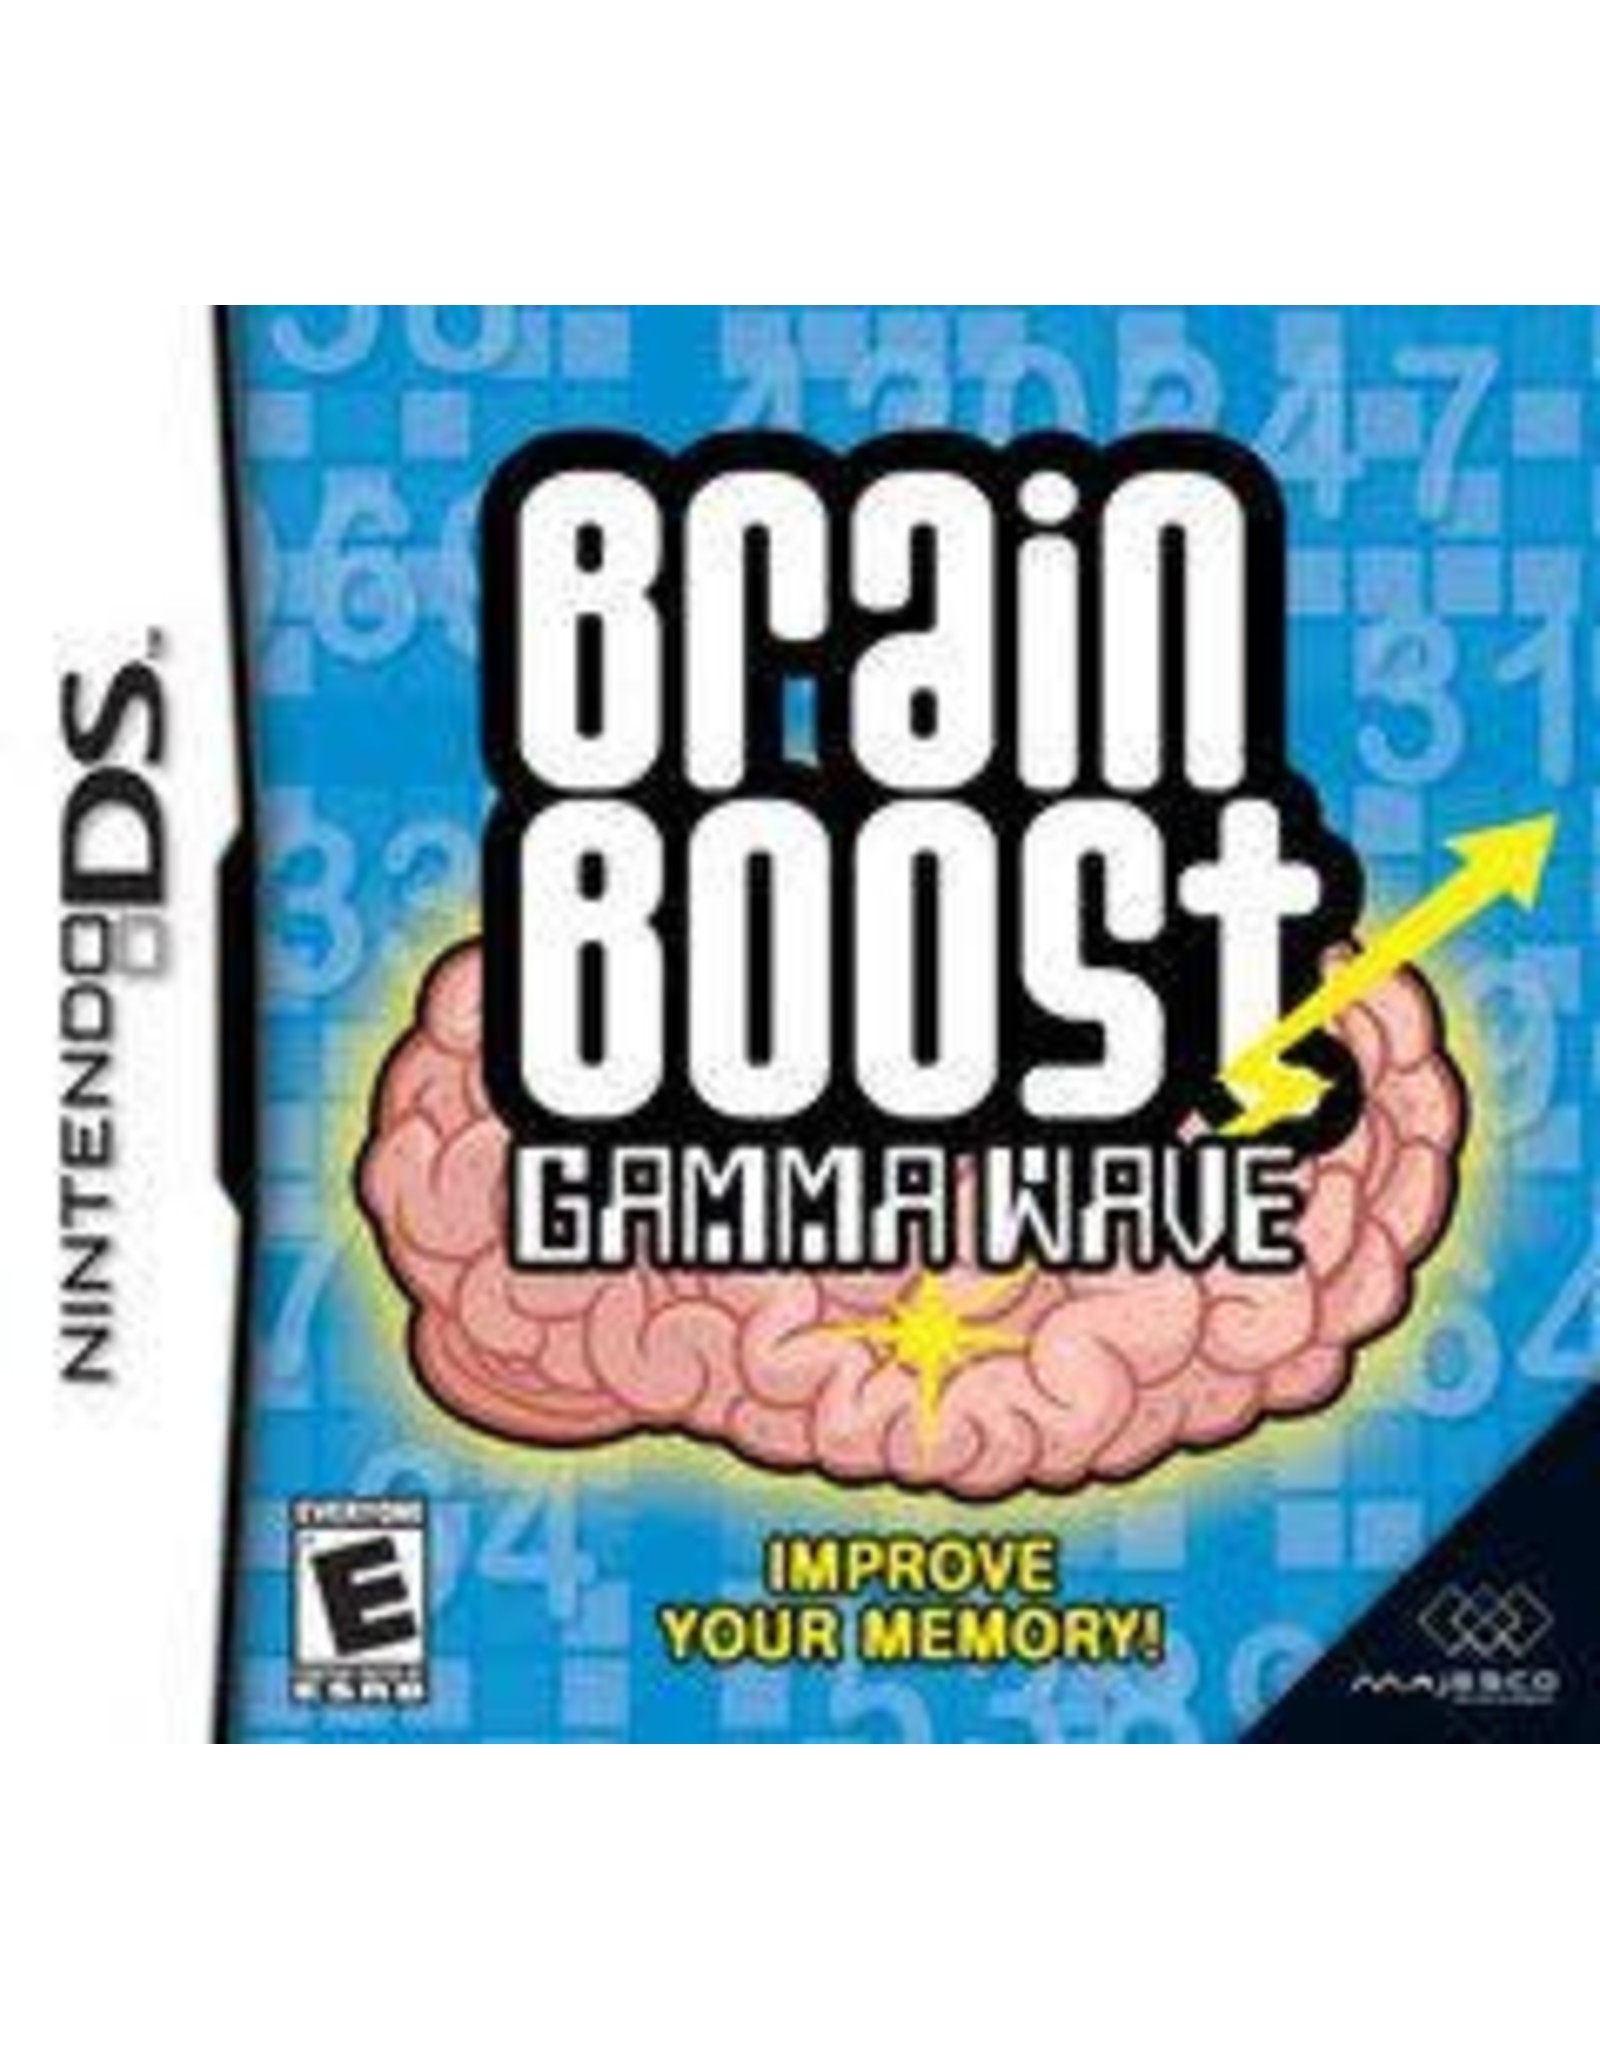 Nintendo DS Brain Boost Gamma Wave